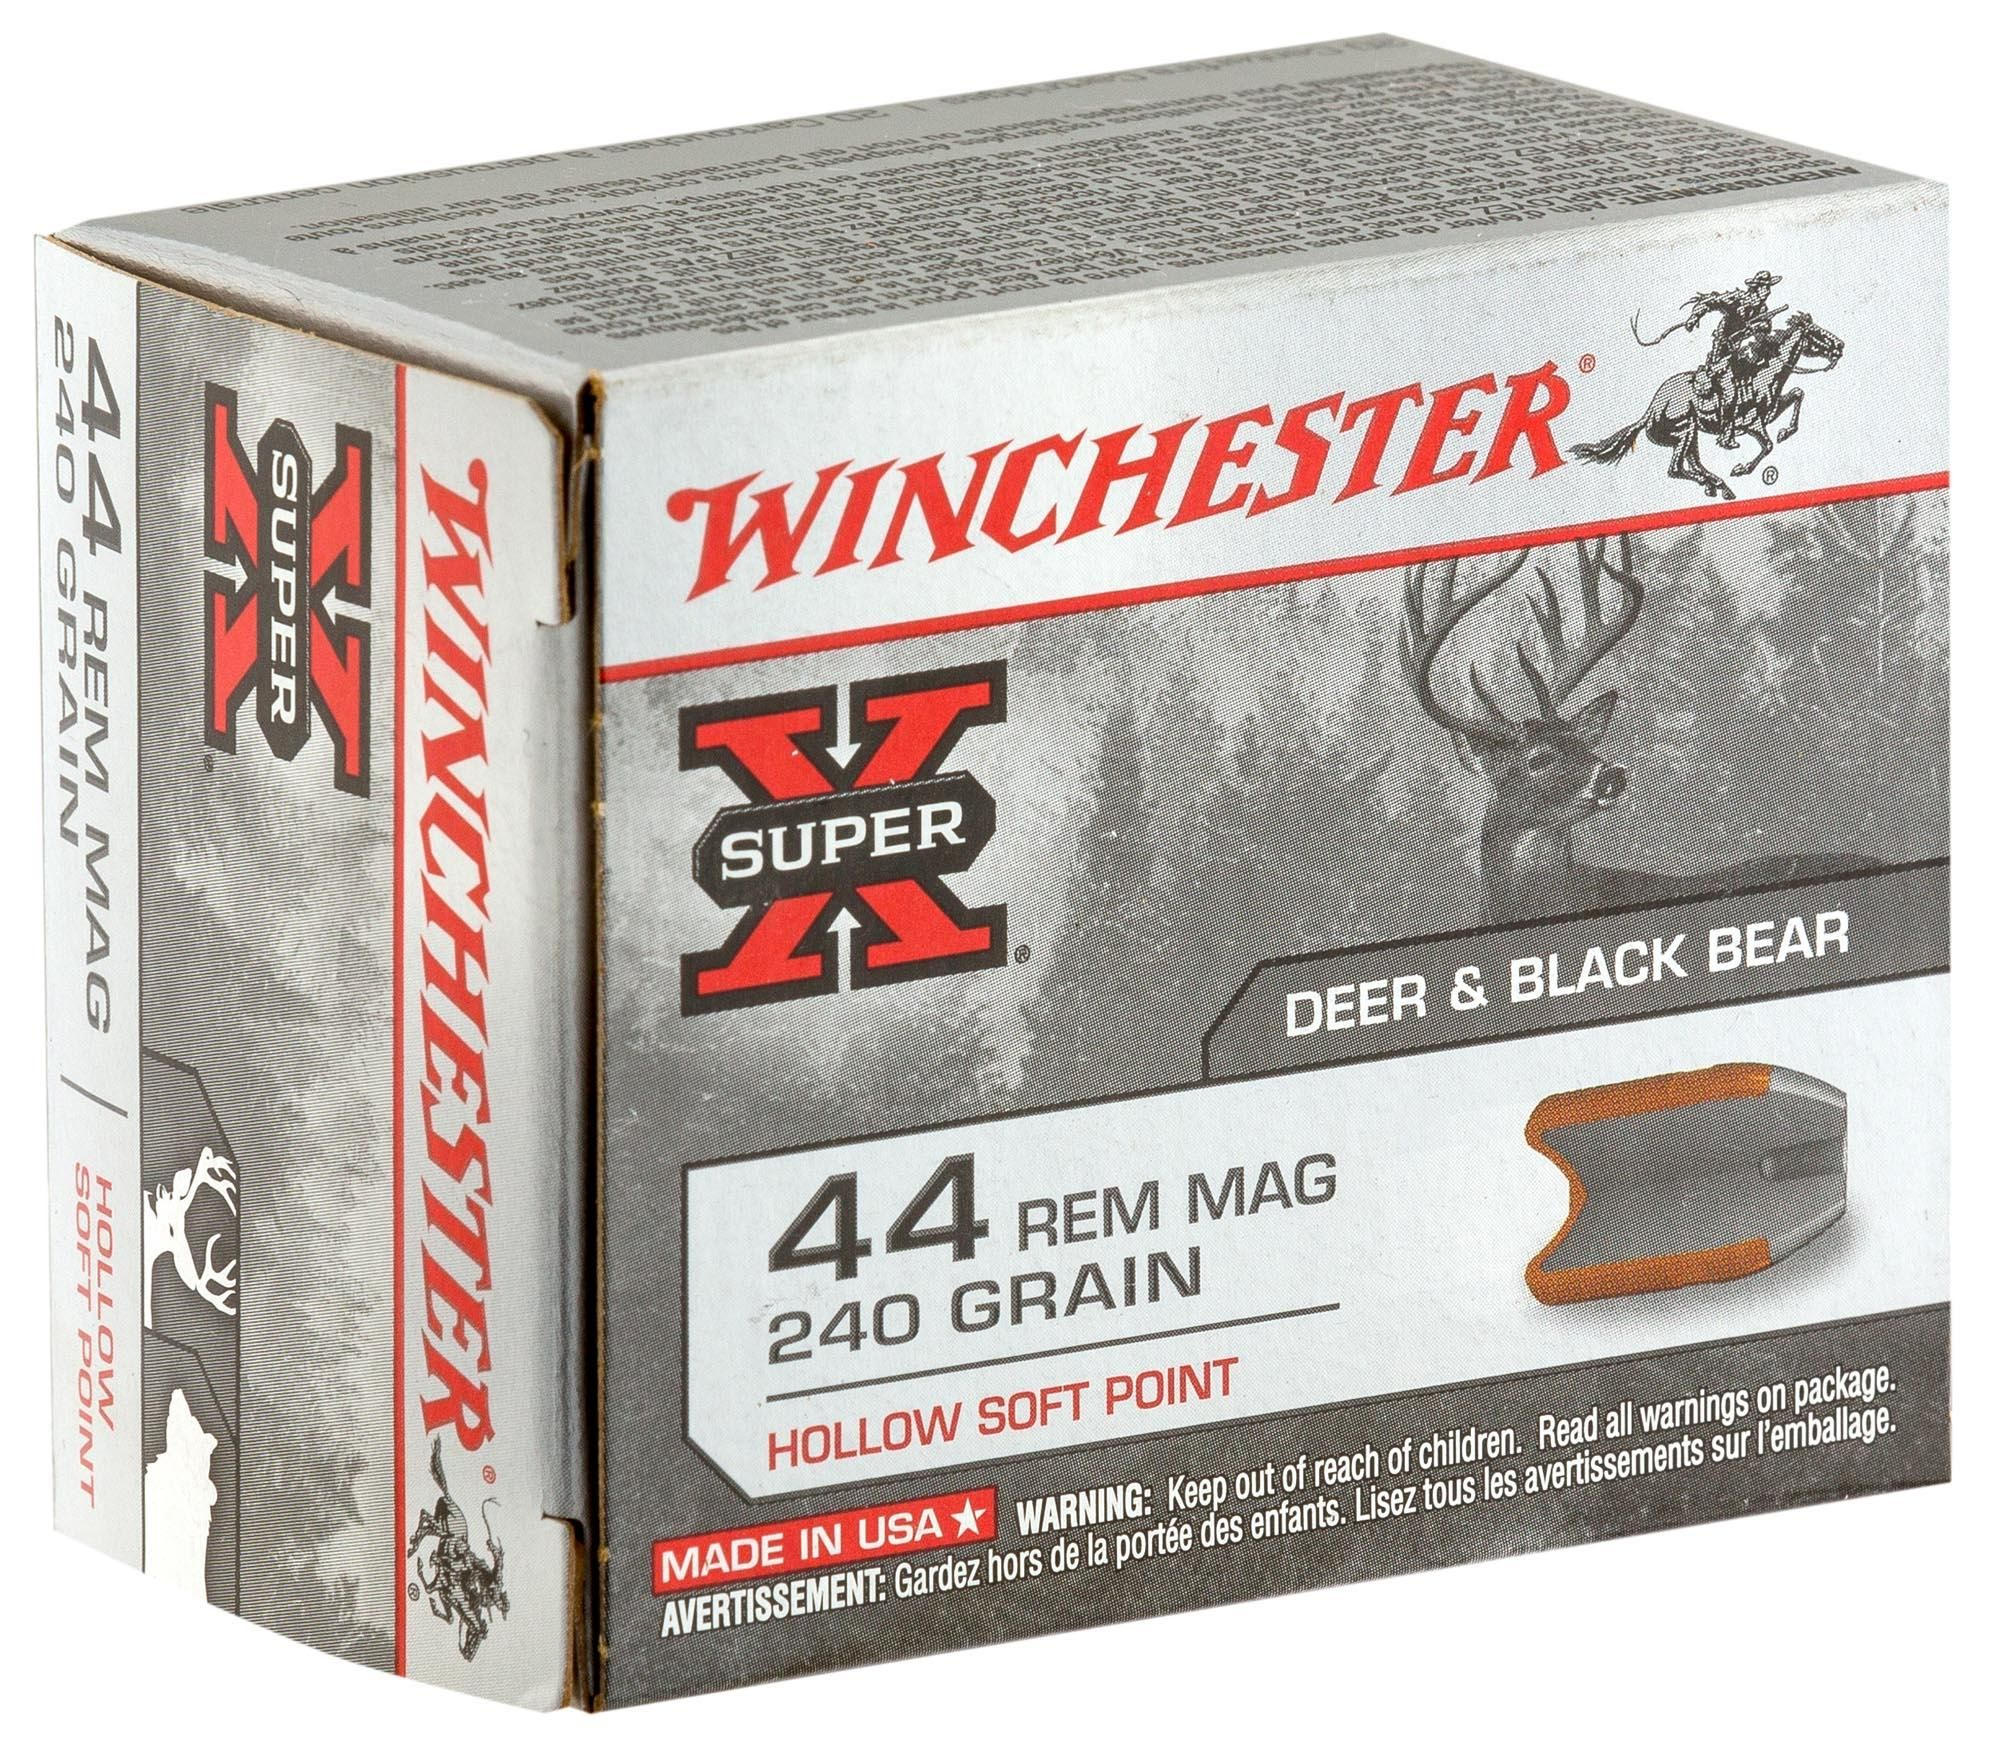 WINCHESTER CAL.44 REM MAG - BW4402